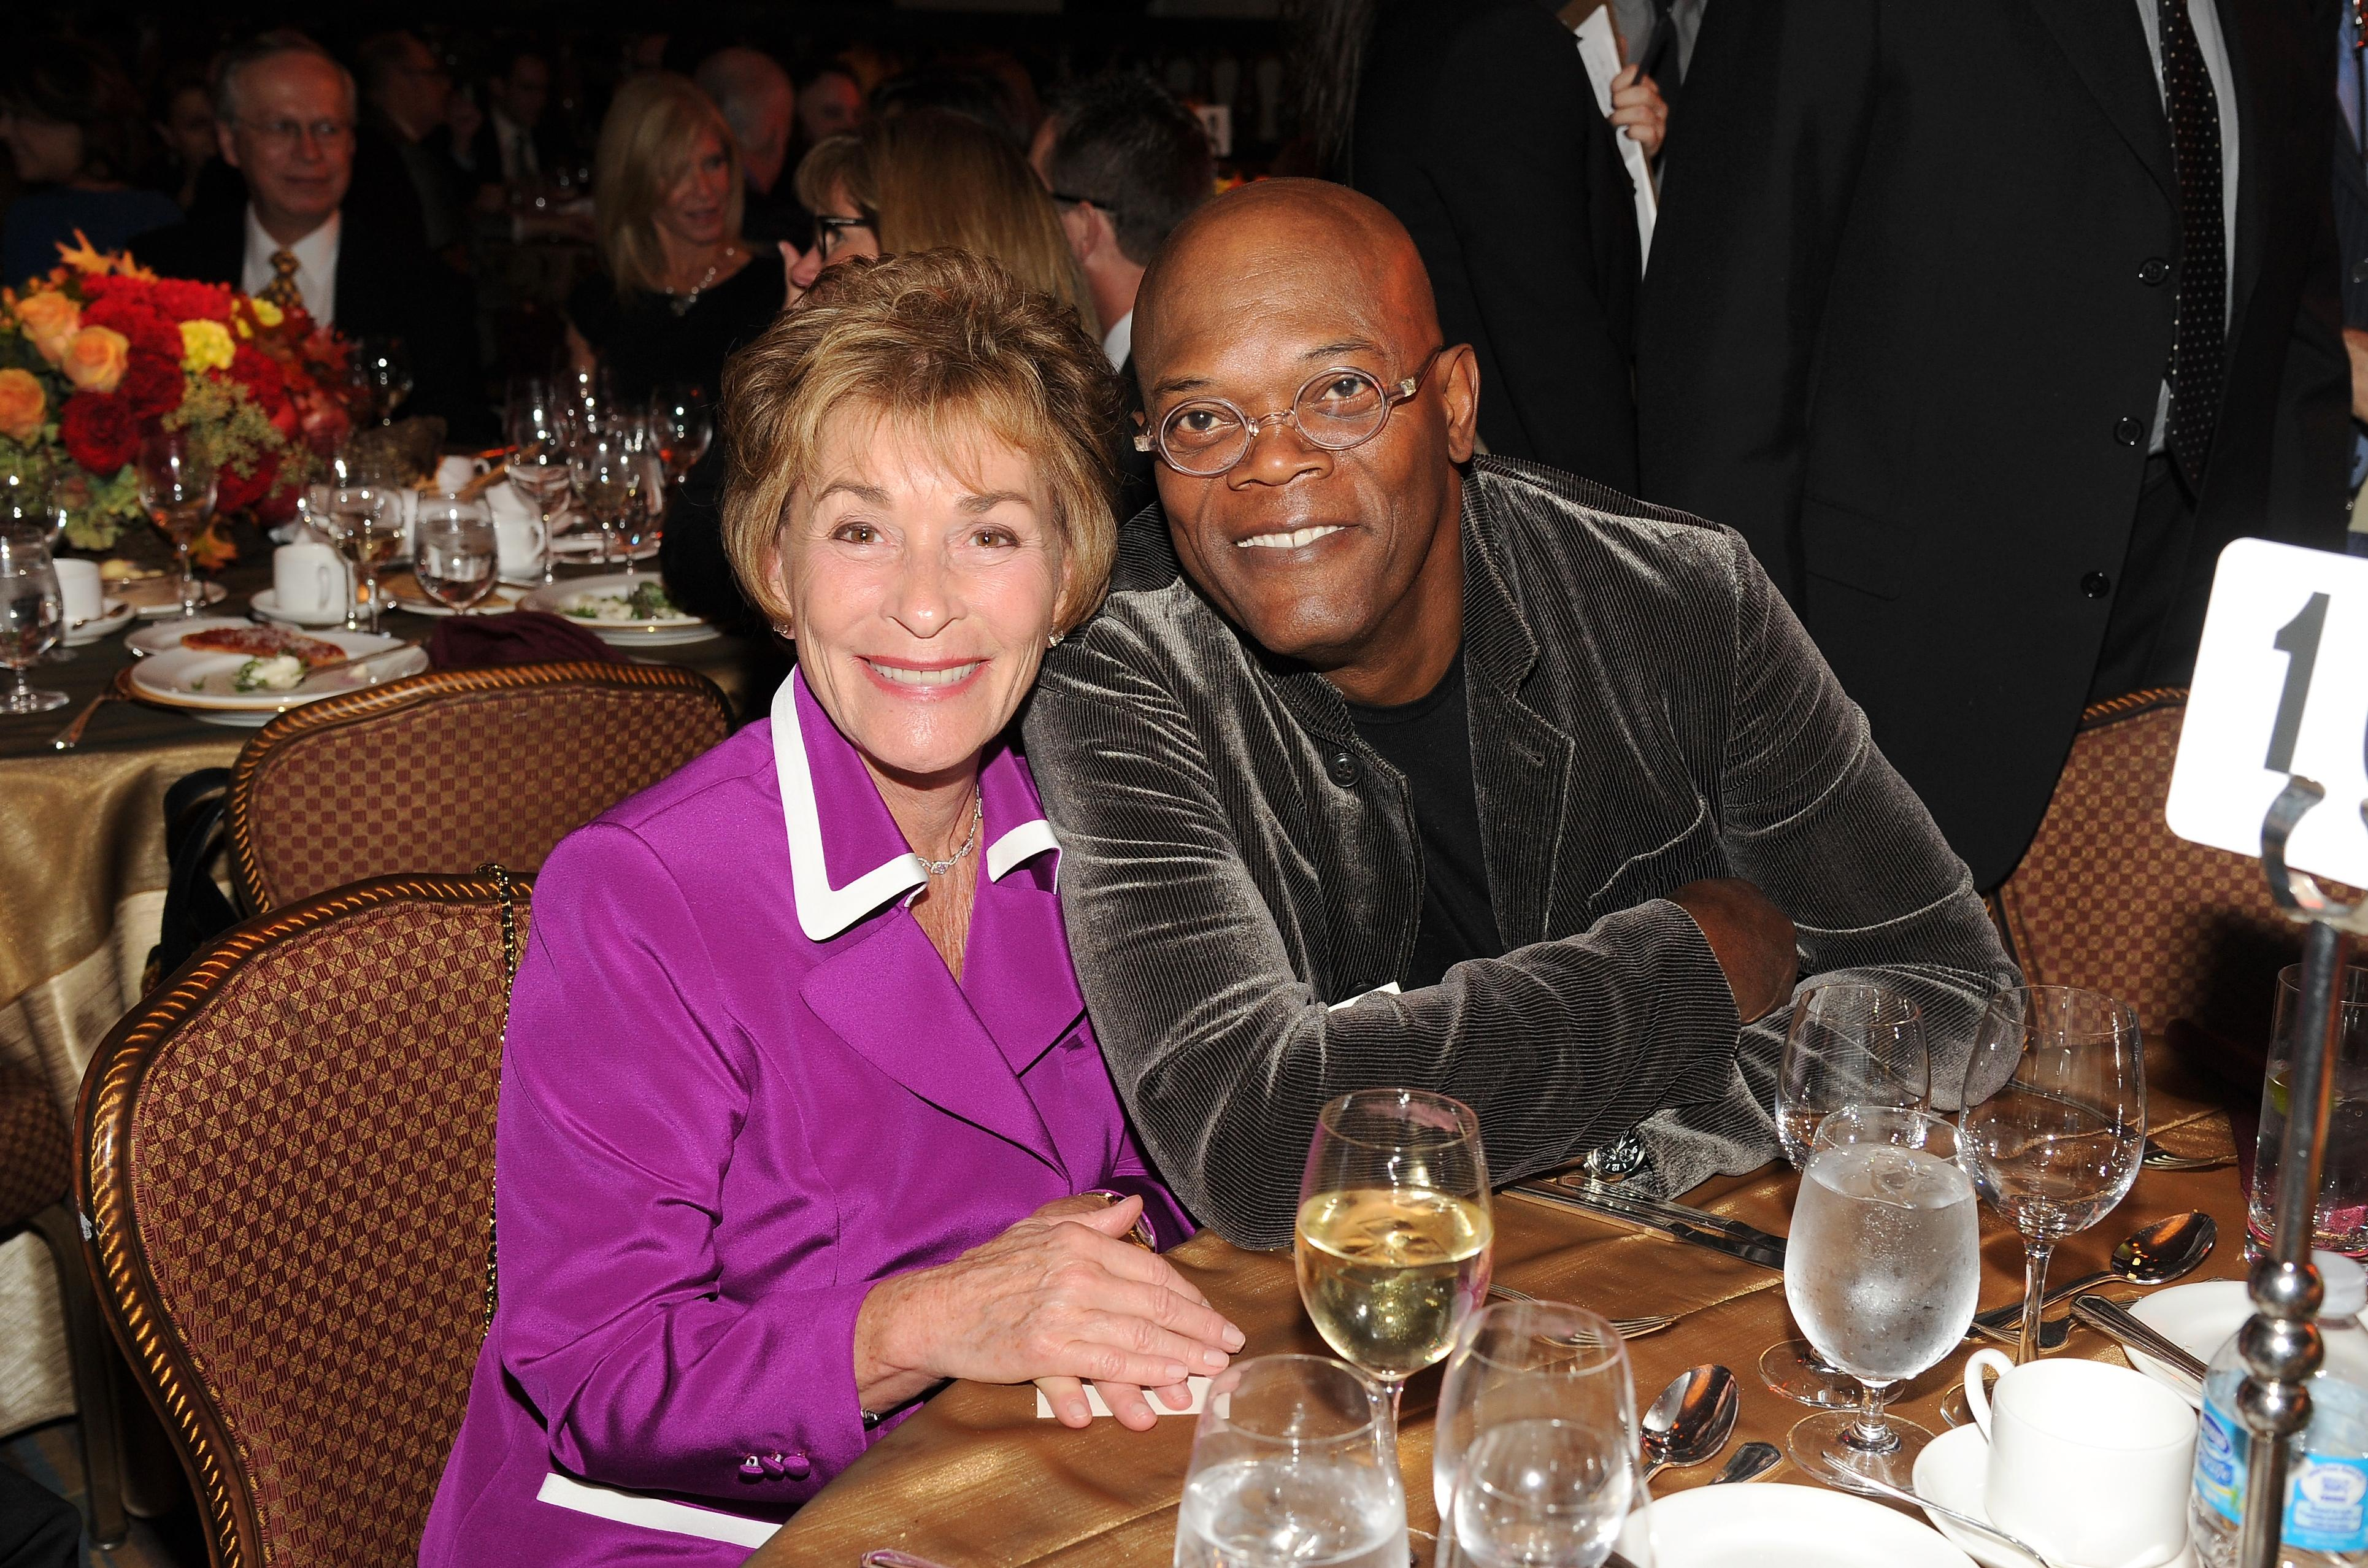 Judge Judy and Samuel L. Jackson